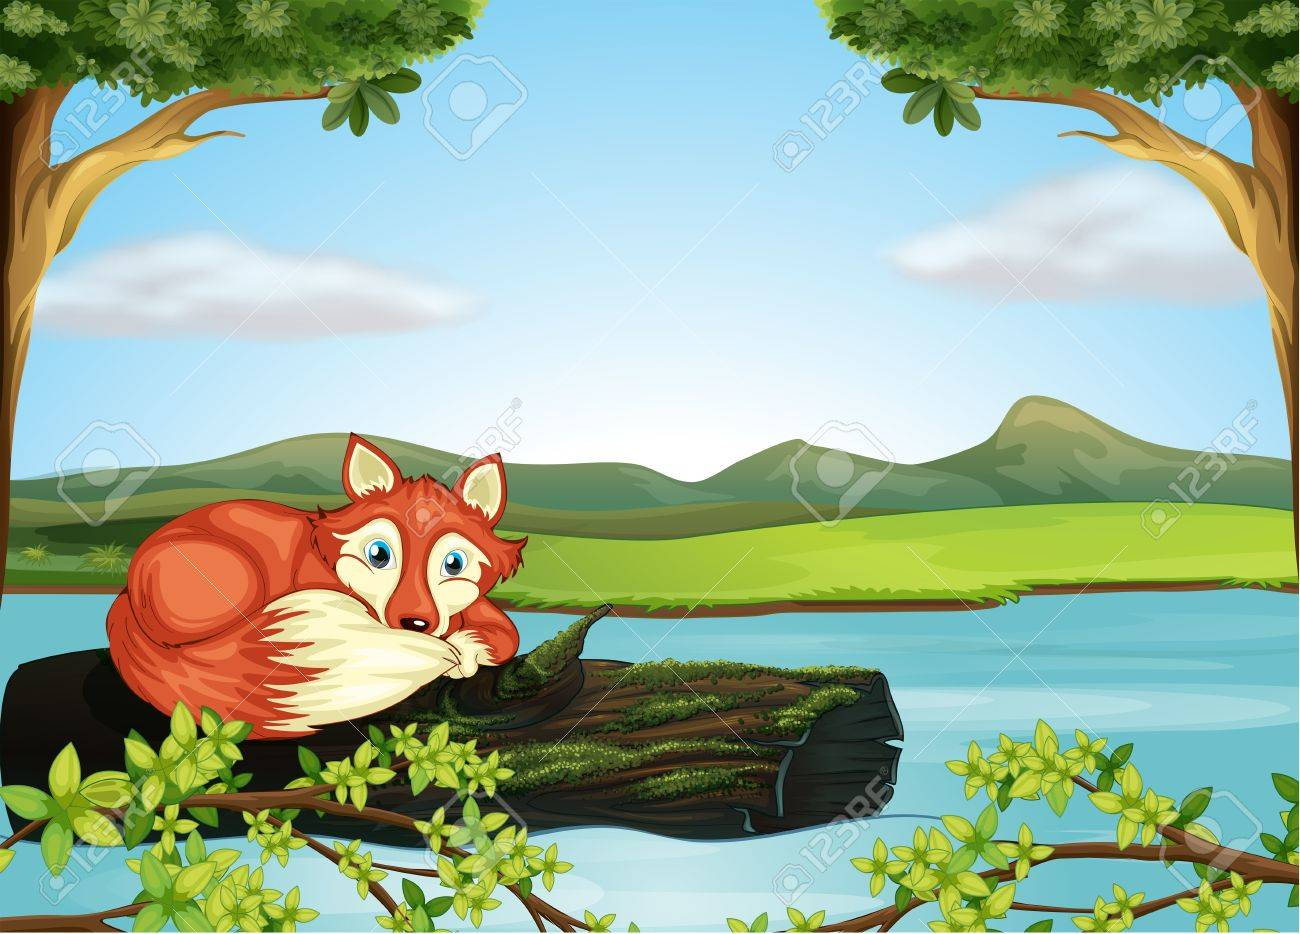 Illustration of a wild animal in the river Stock Vector - 17895726